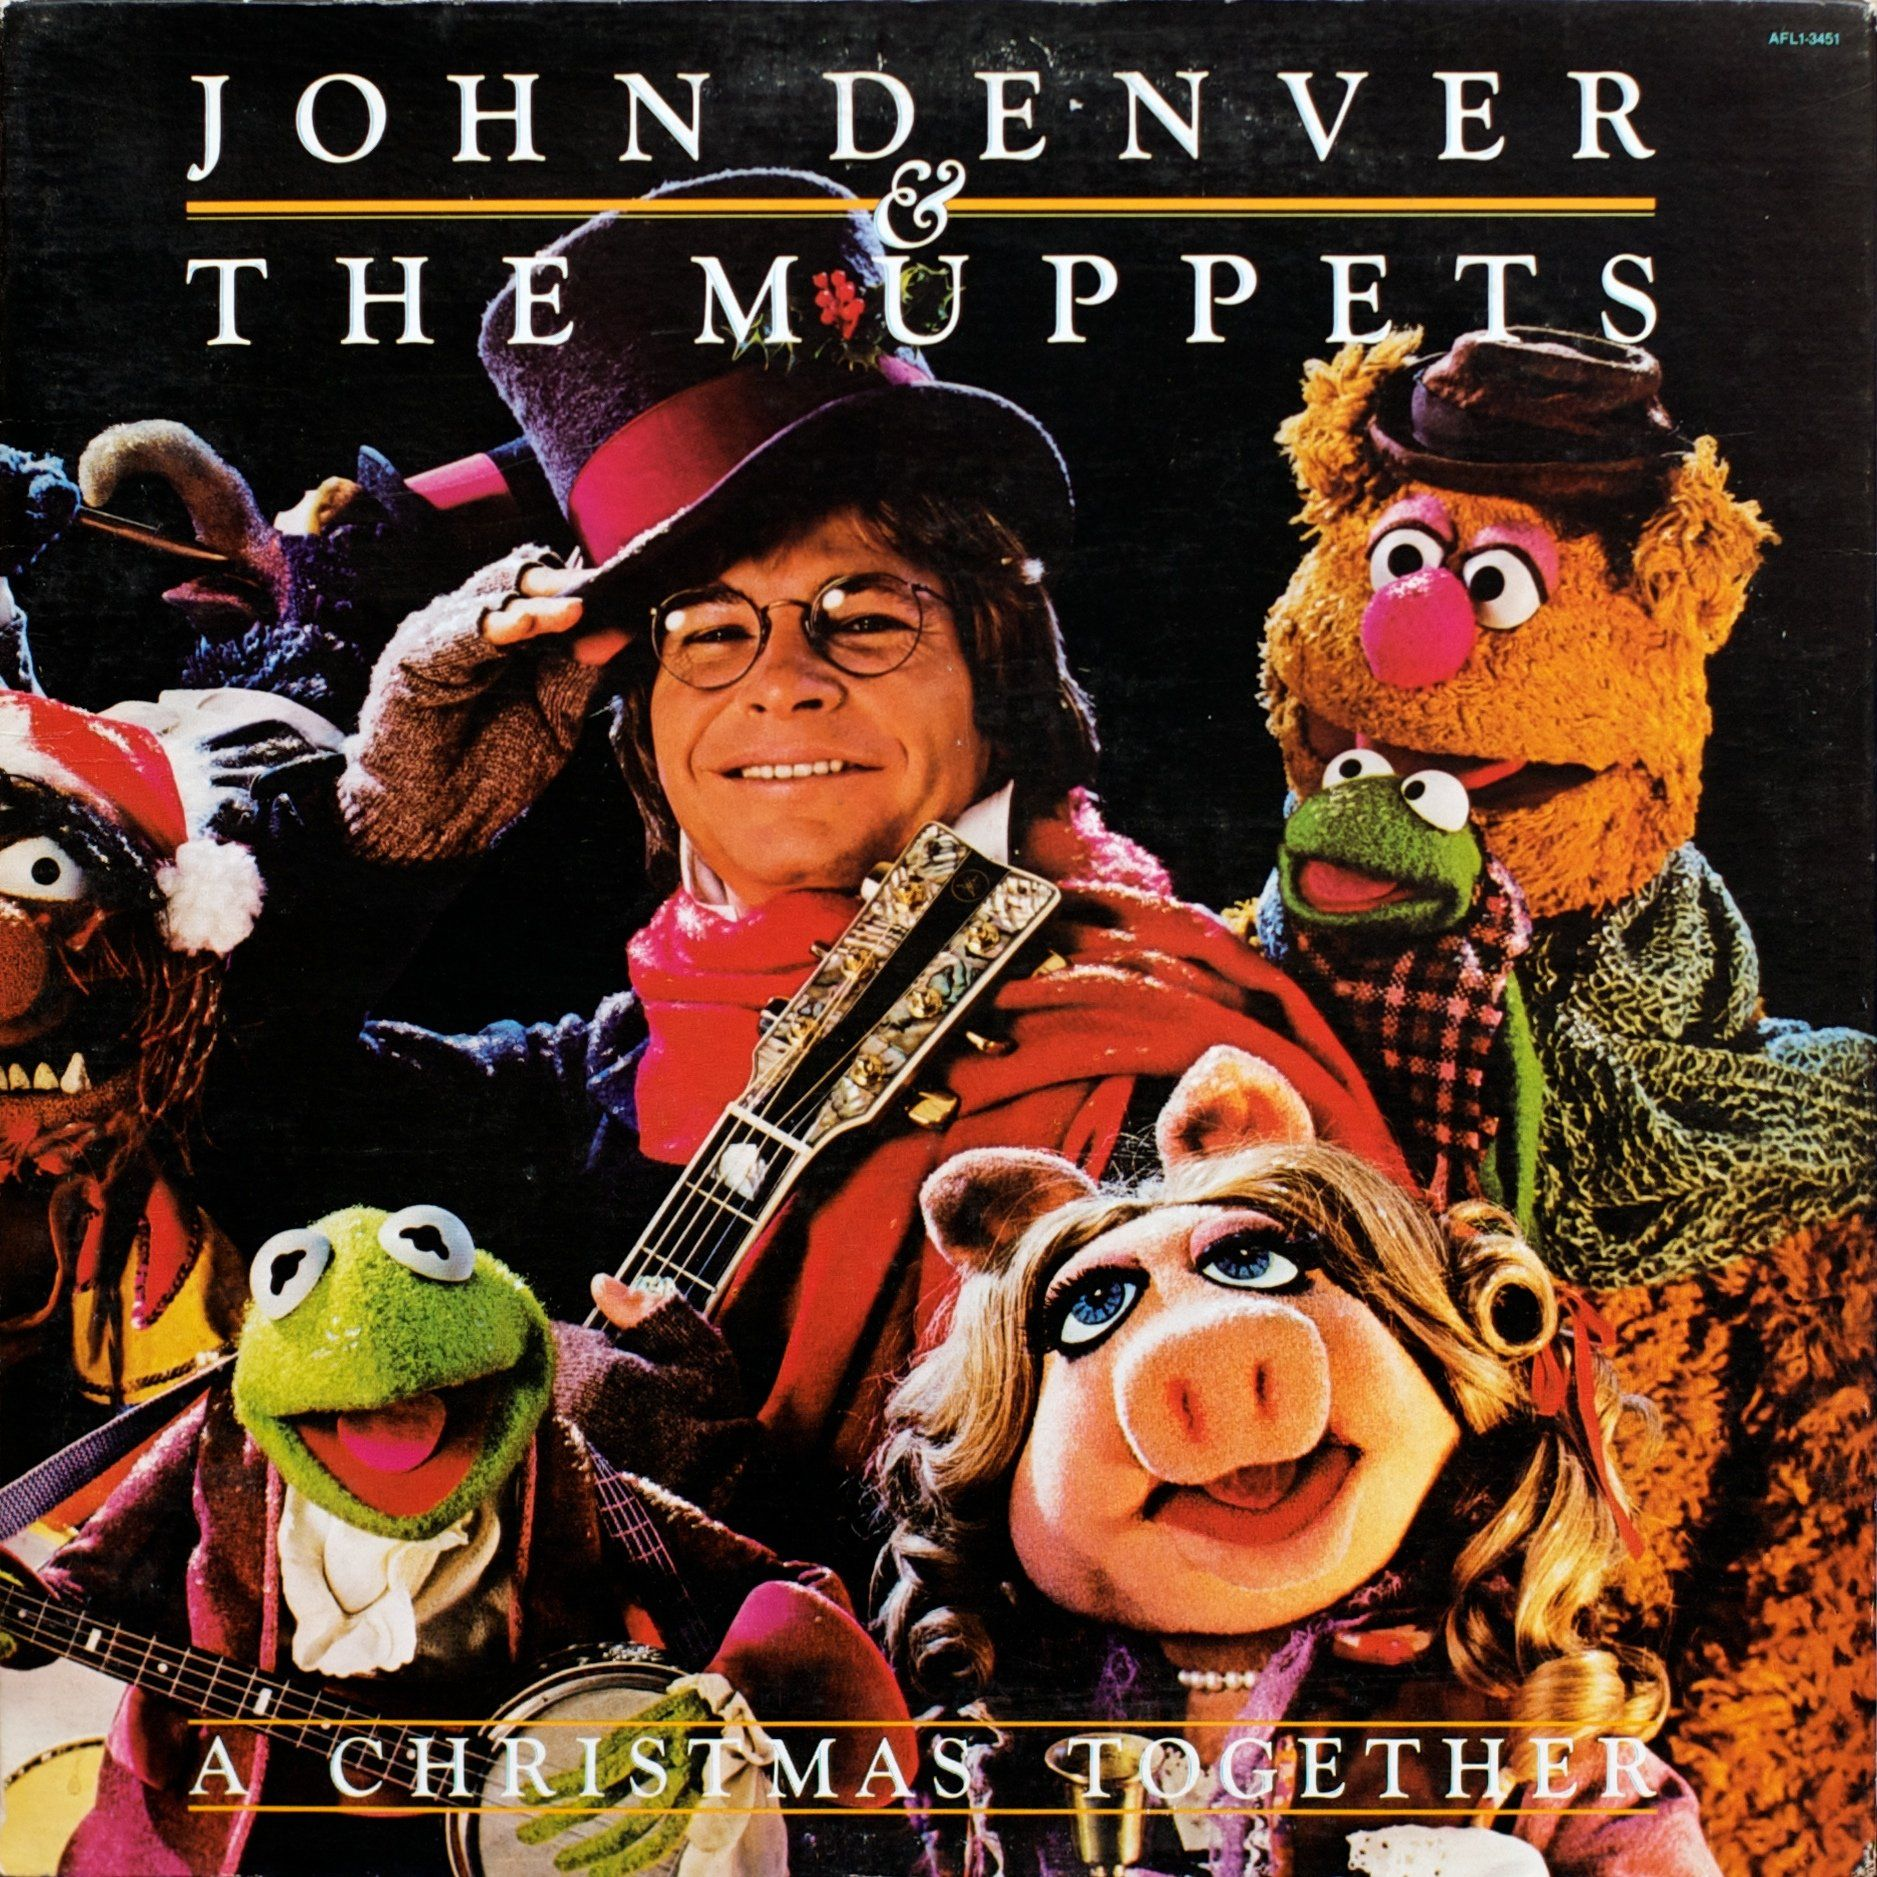 Let S Put On Some Holiday Tunes And Raise A Glass To Friendship Cheers Muppets Christmas John Denver Christmas Albums